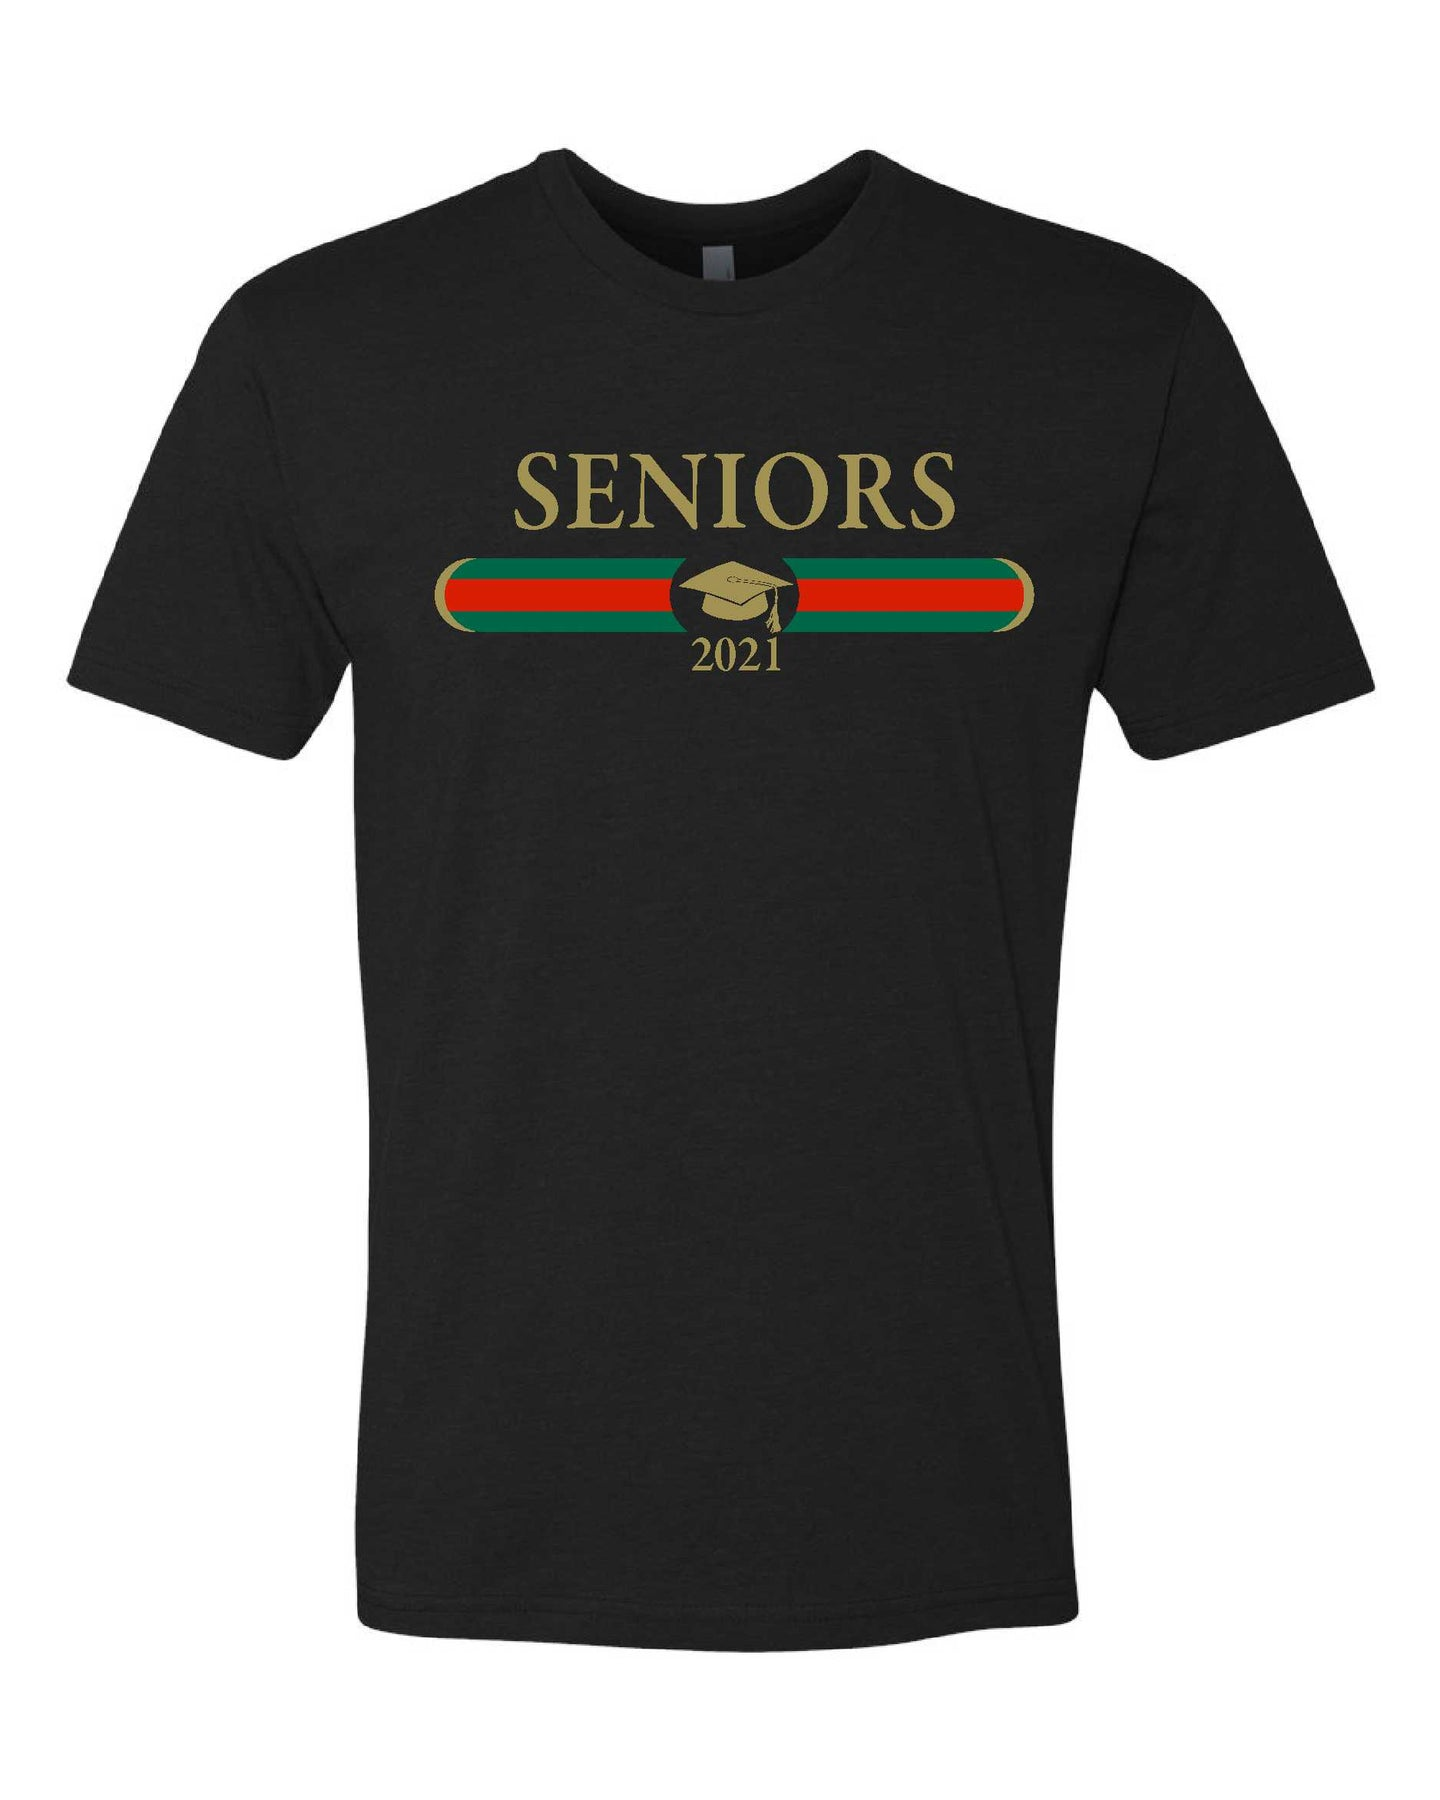 Seniors Black Soft Cotton/Blend Crew